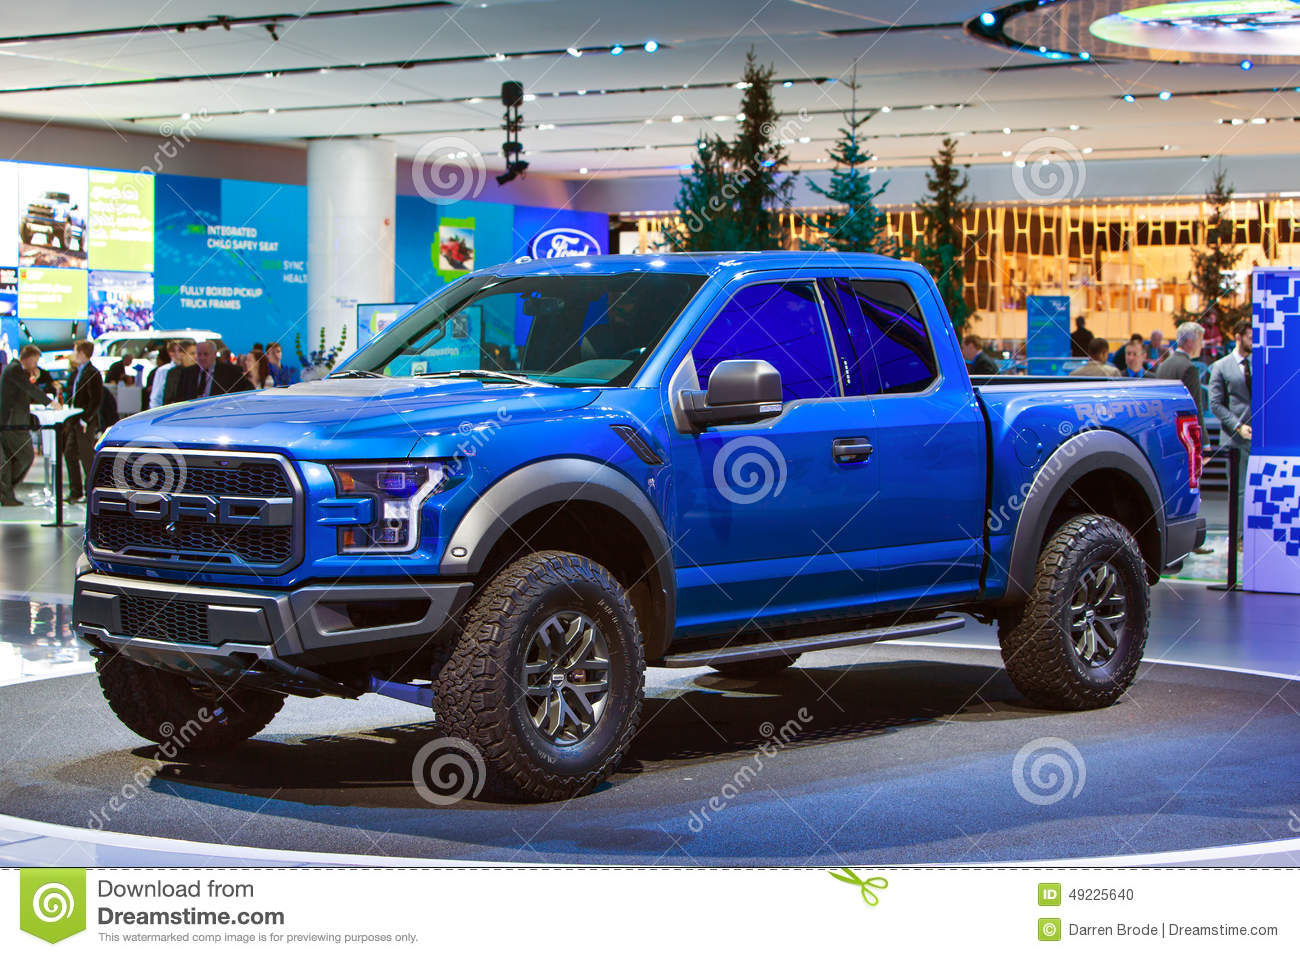 ford raptor pickup truck detroit auto show 2015 redaktionell foto bild 49225640. Black Bedroom Furniture Sets. Home Design Ideas